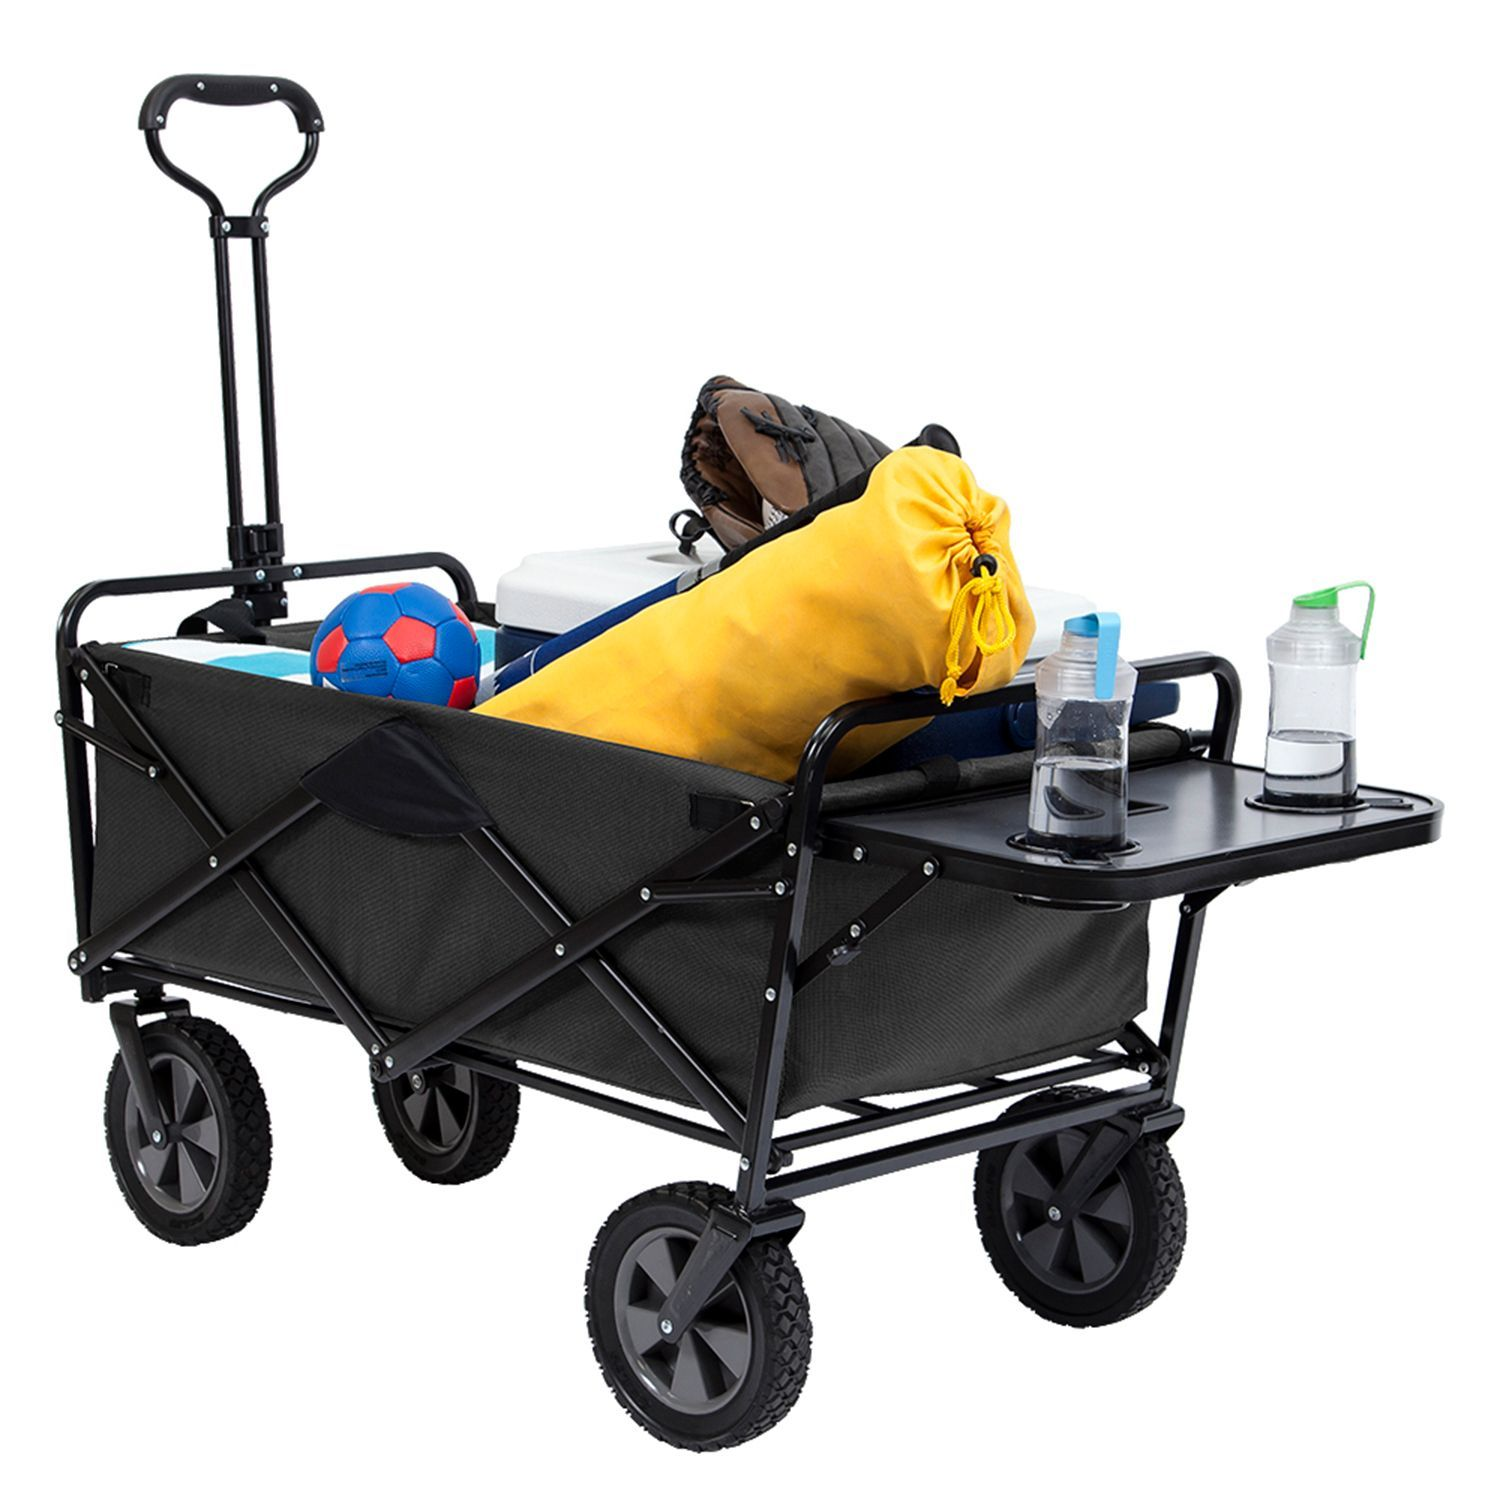 Folding Wagon With Table In Orted Colors Sam S Club